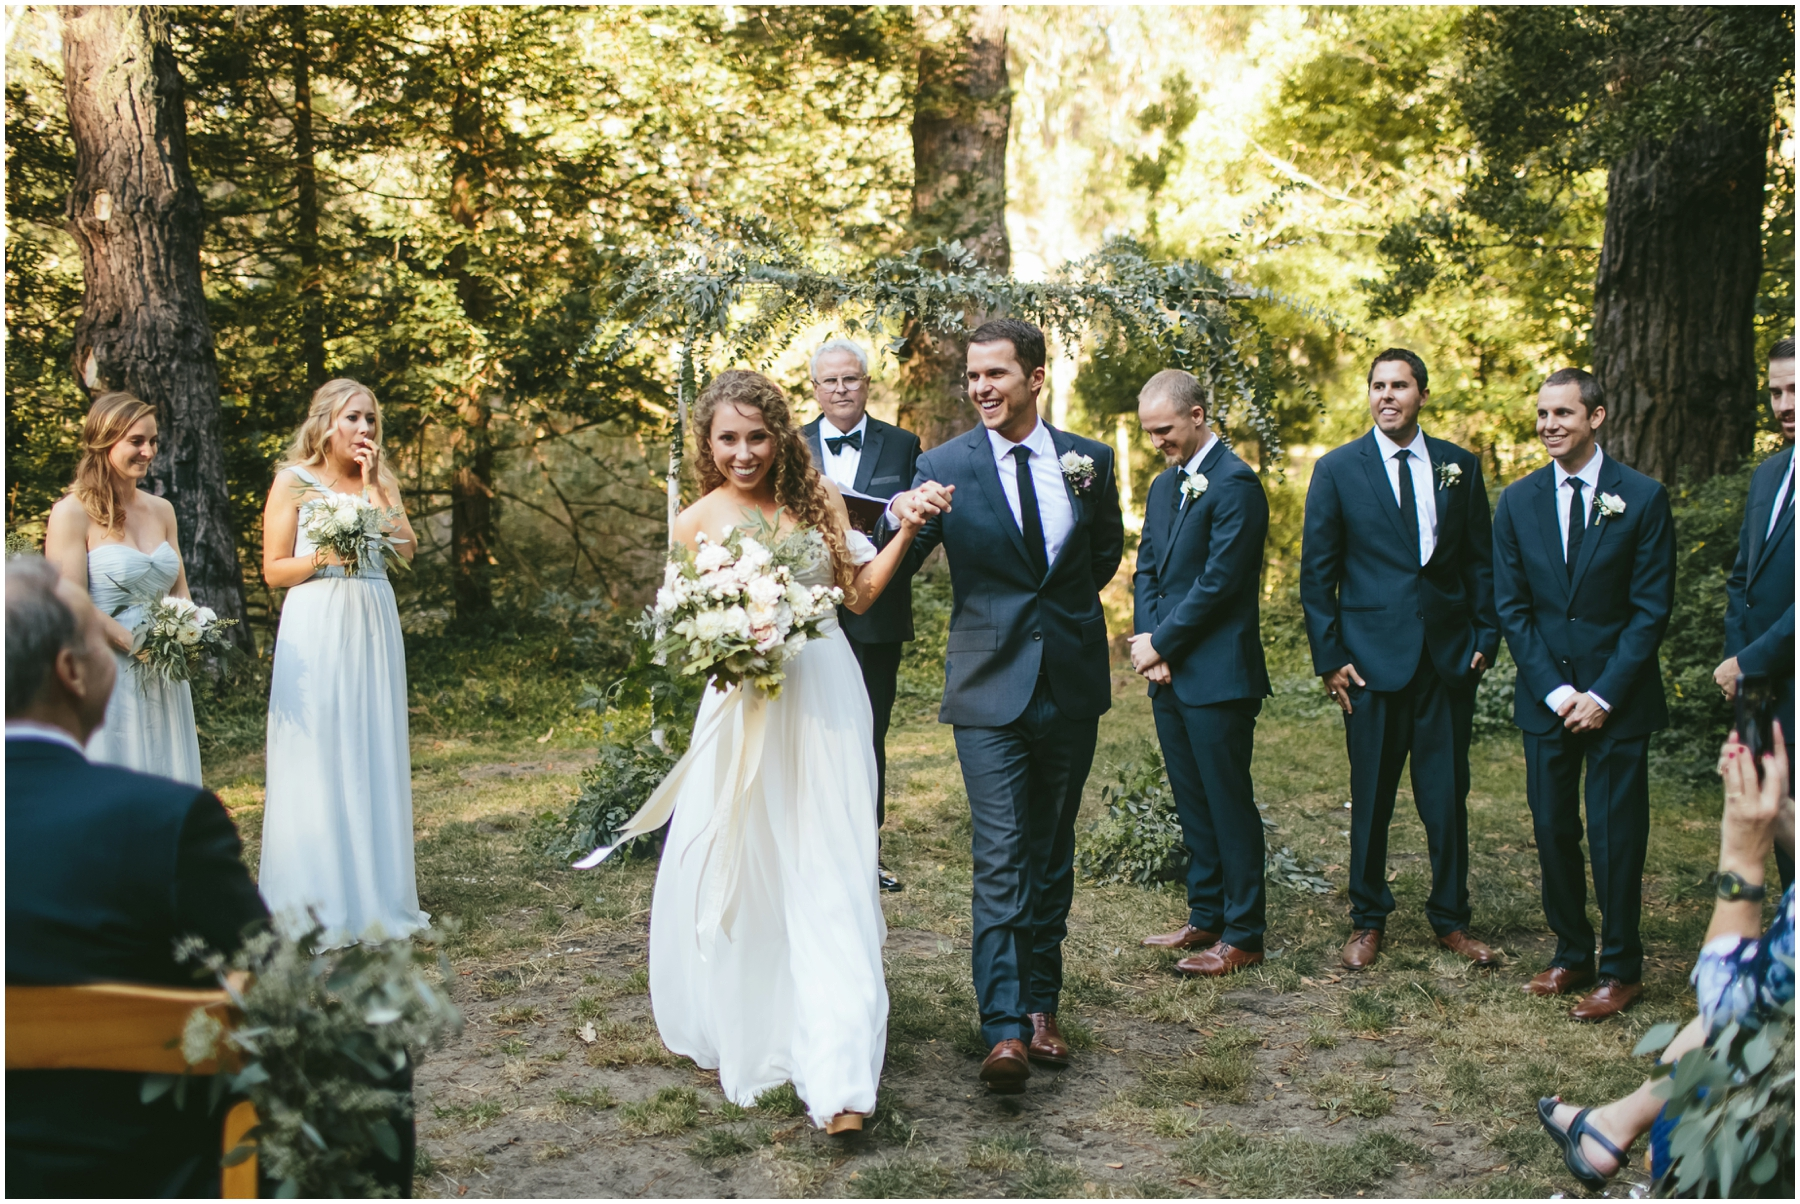 Emily+Paul-WEDDING_KellyBoitanoPhotography_0097